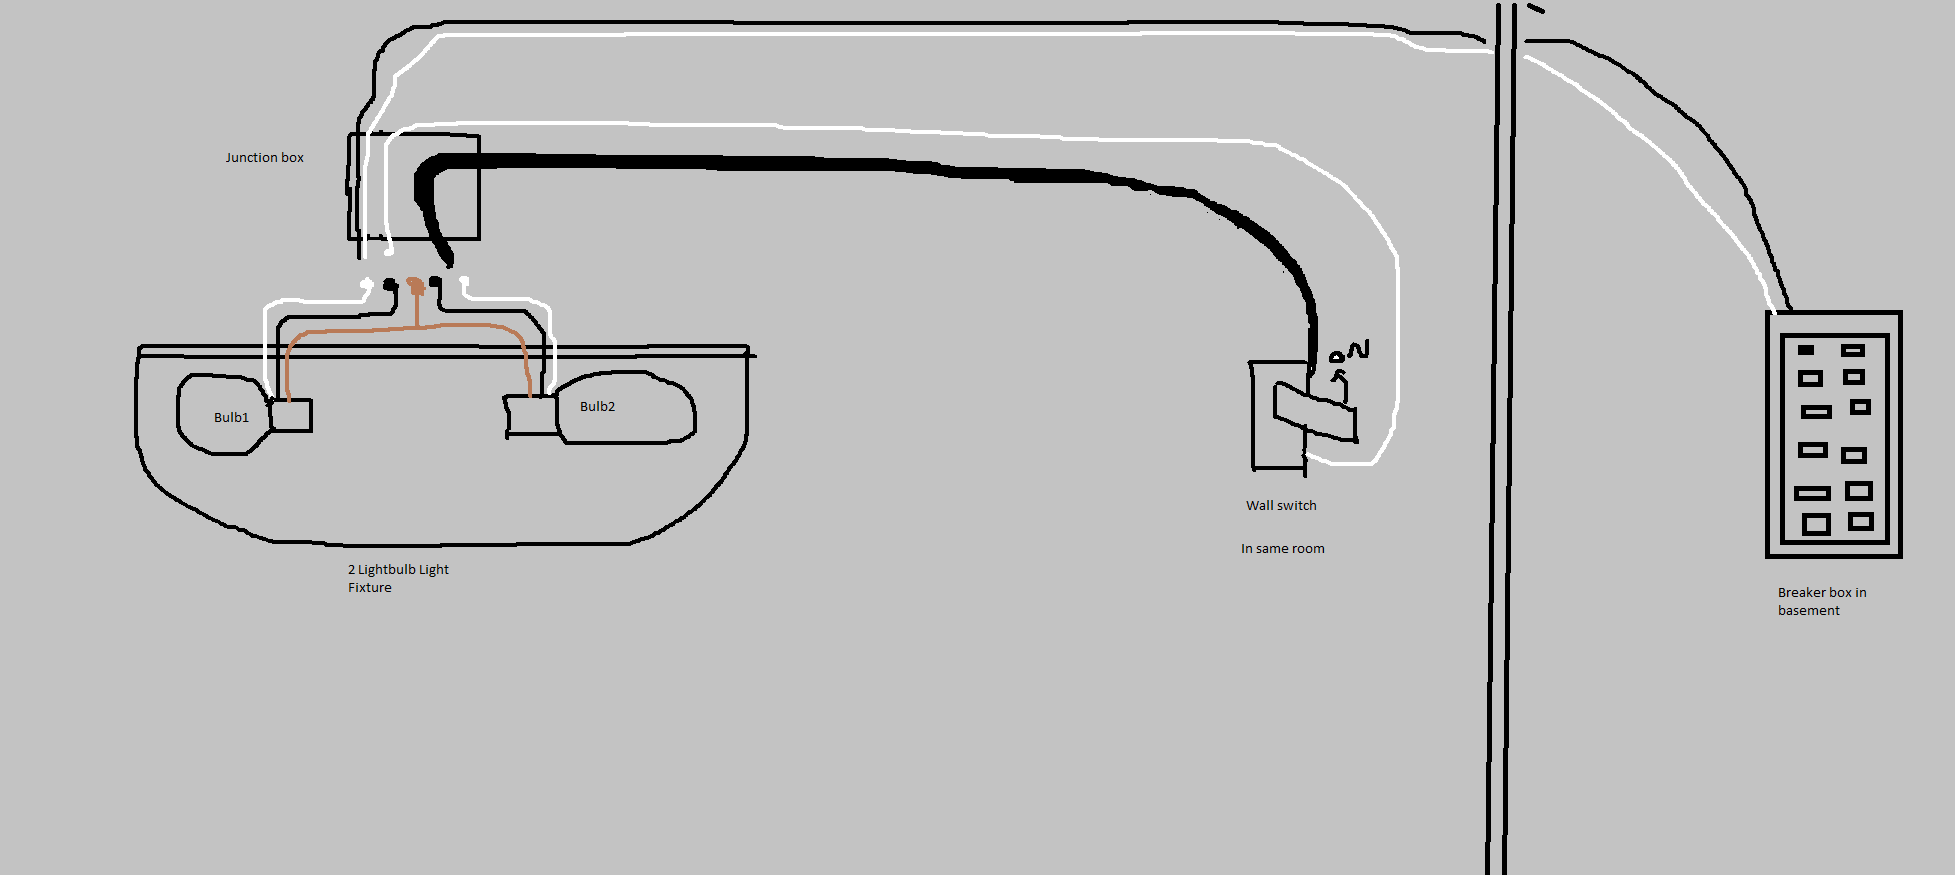 [DT_4154] Connecting A Light Fixture Wiring Wiring Diagram